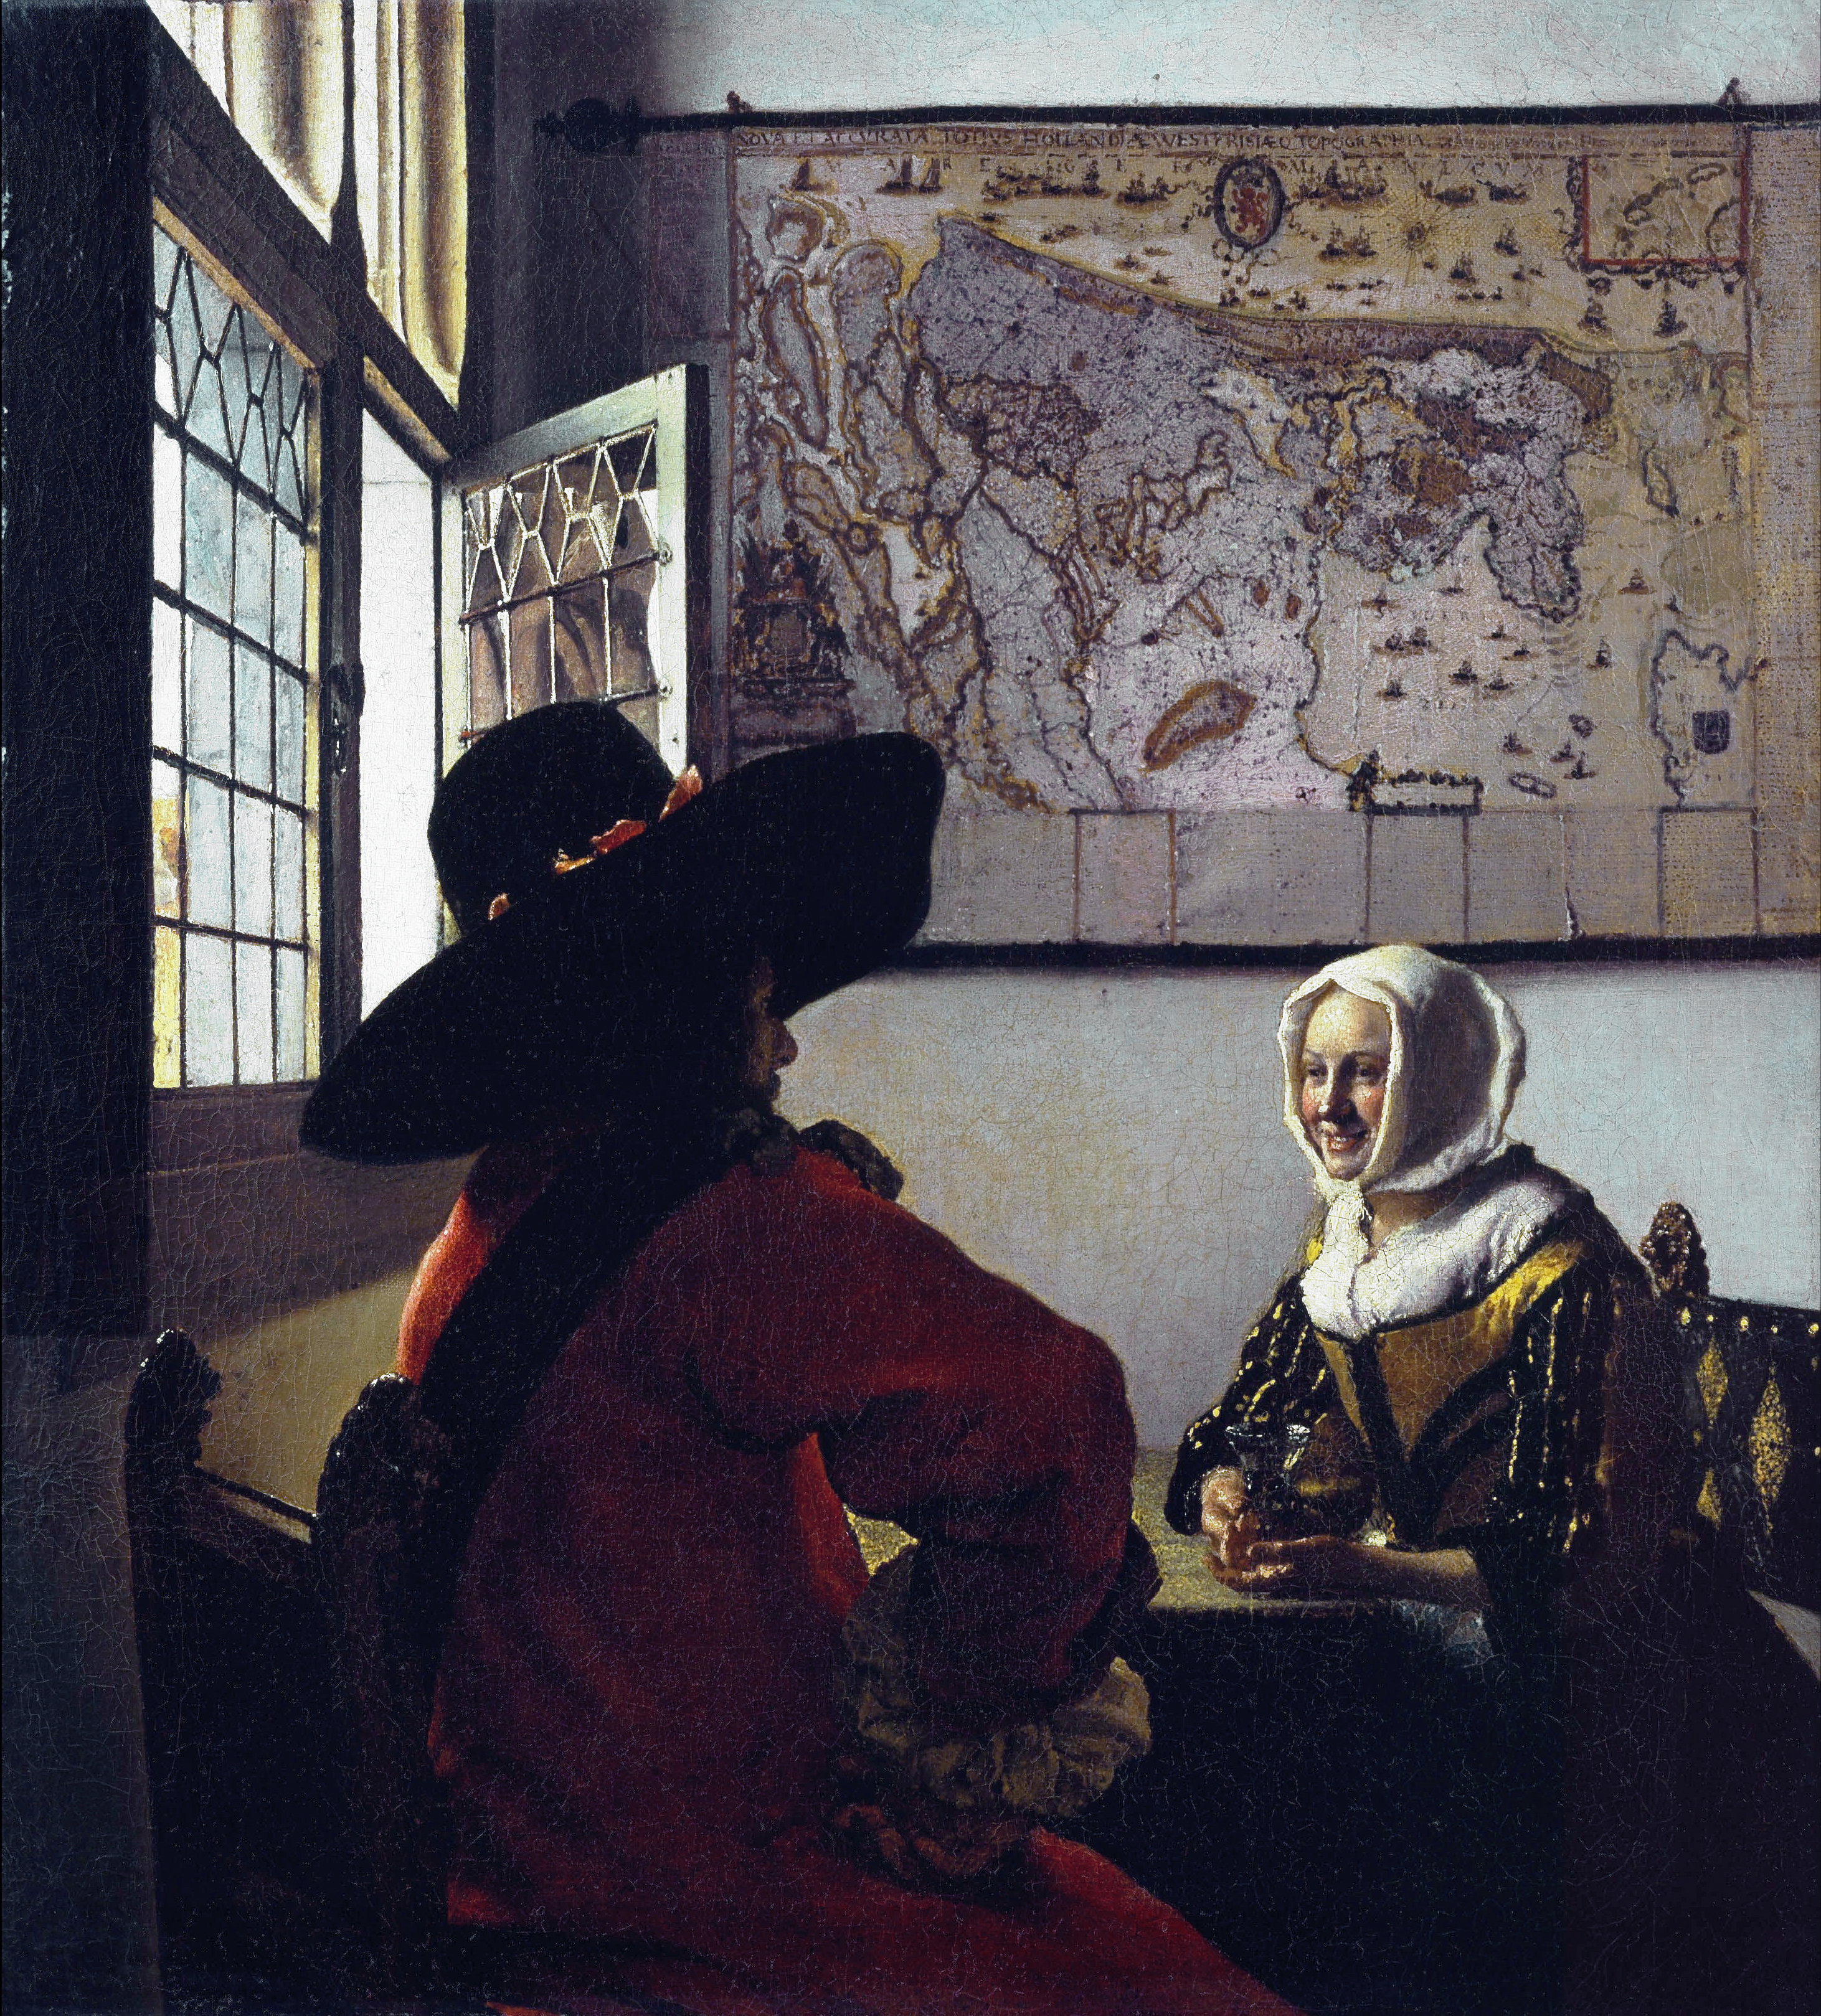 johannes vermeer Johannes vermeer was a dutch painter who specialized in domestic interior  scenes of middle-class life he was a moderately successful provincial genre.